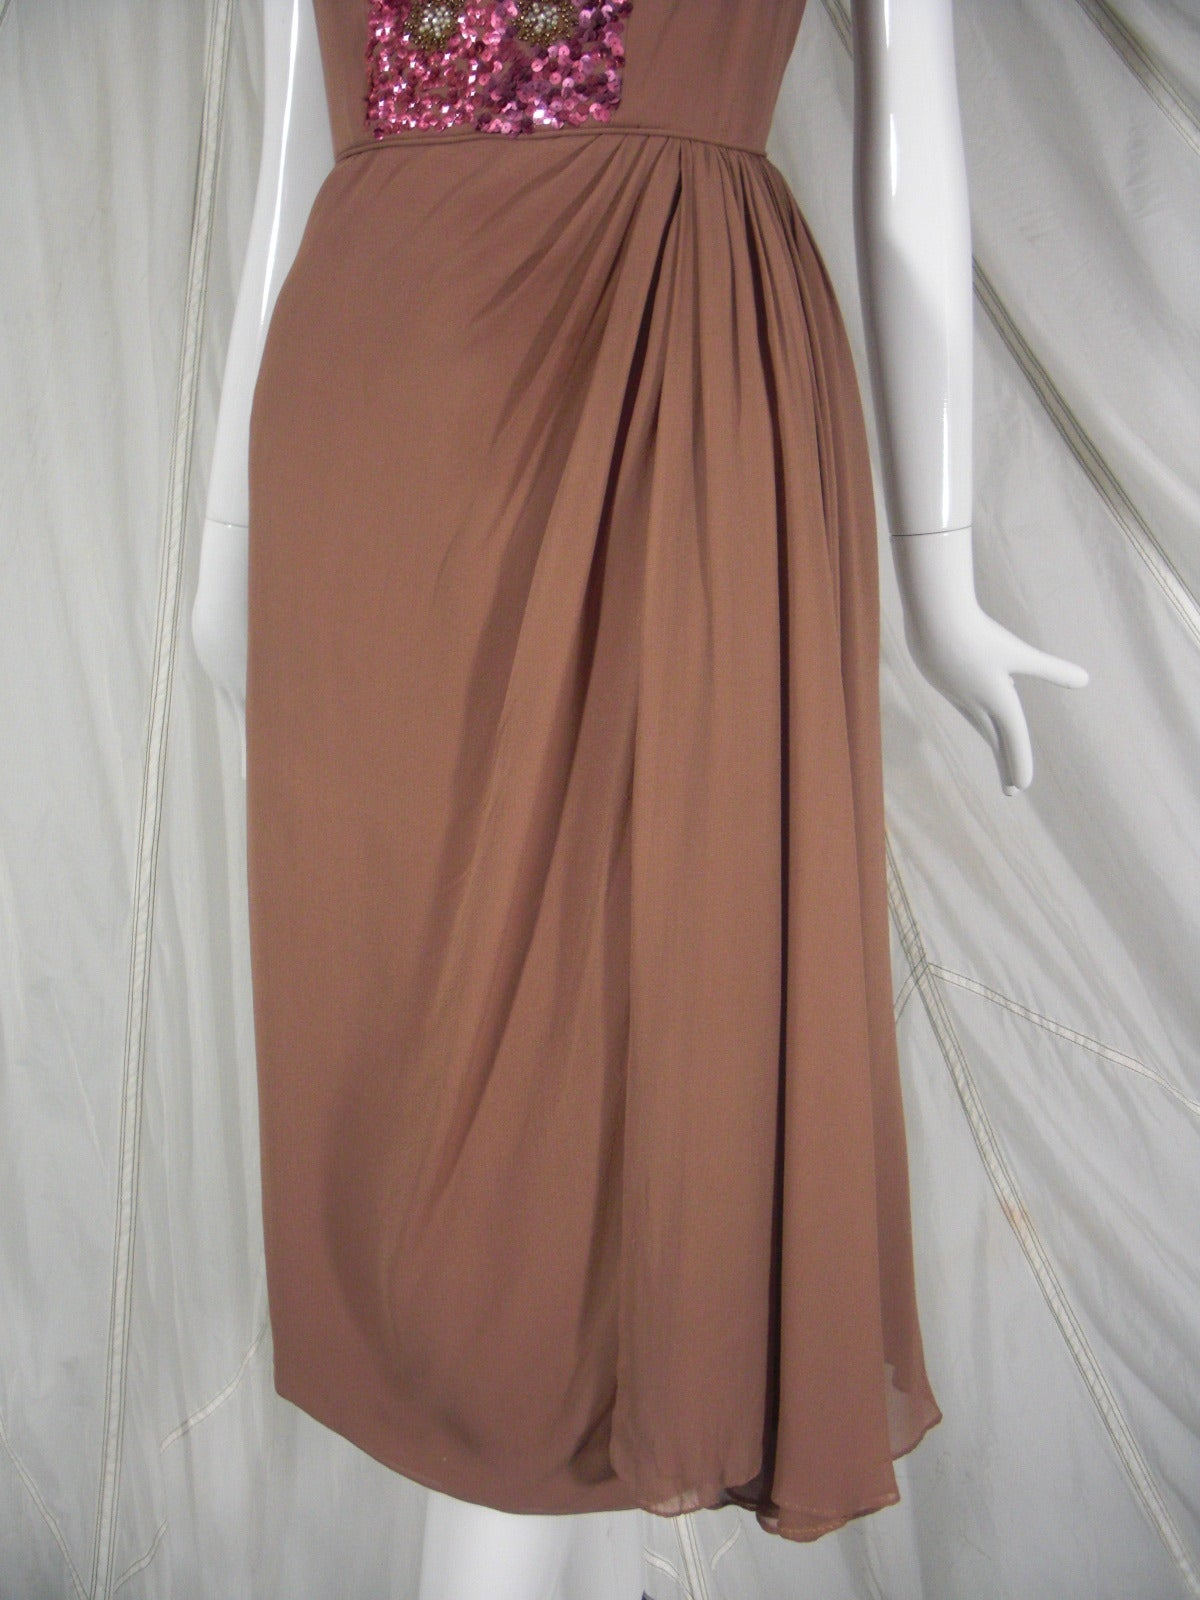 1960s Mocha Silk Chiffon and Sequin Cocktail Dress 5